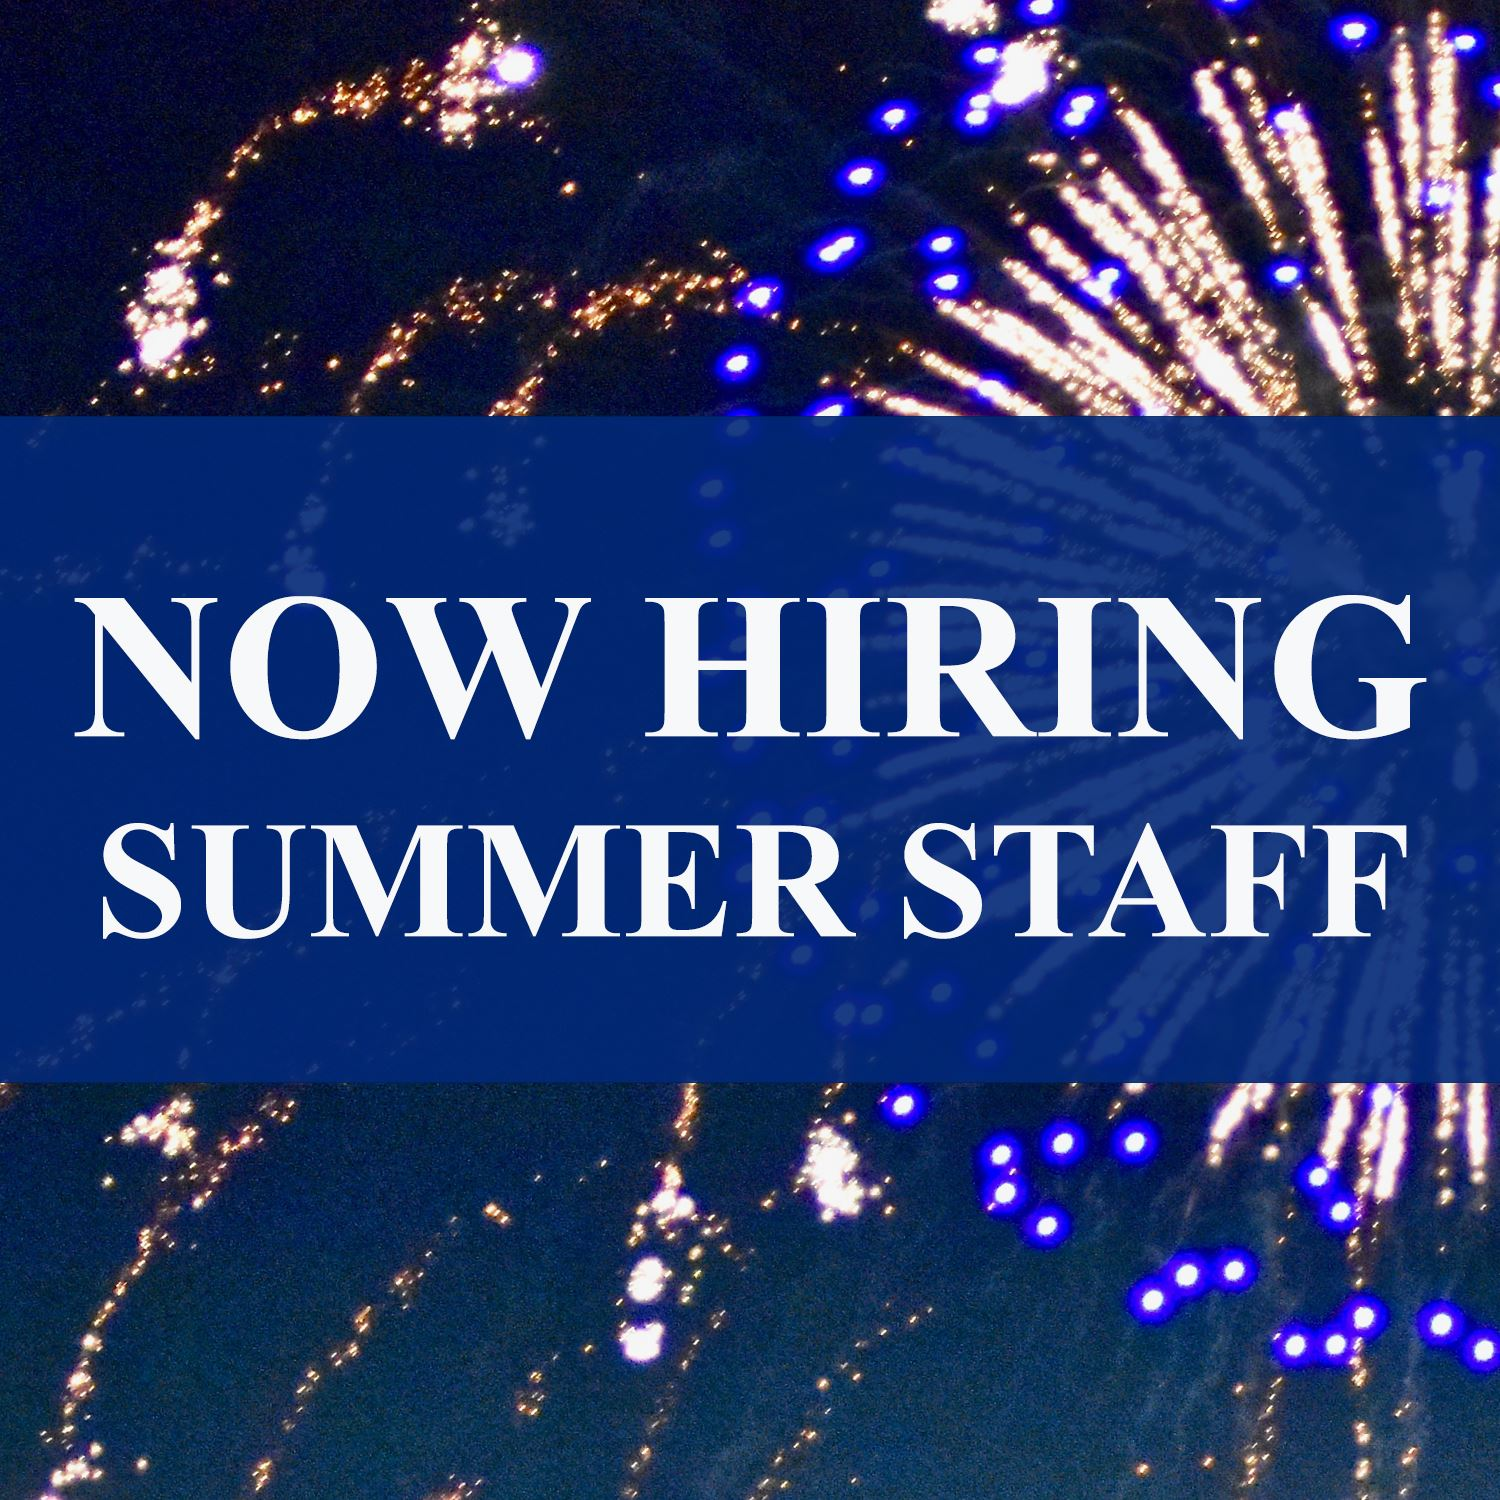 now hiring SUMMER STAFF